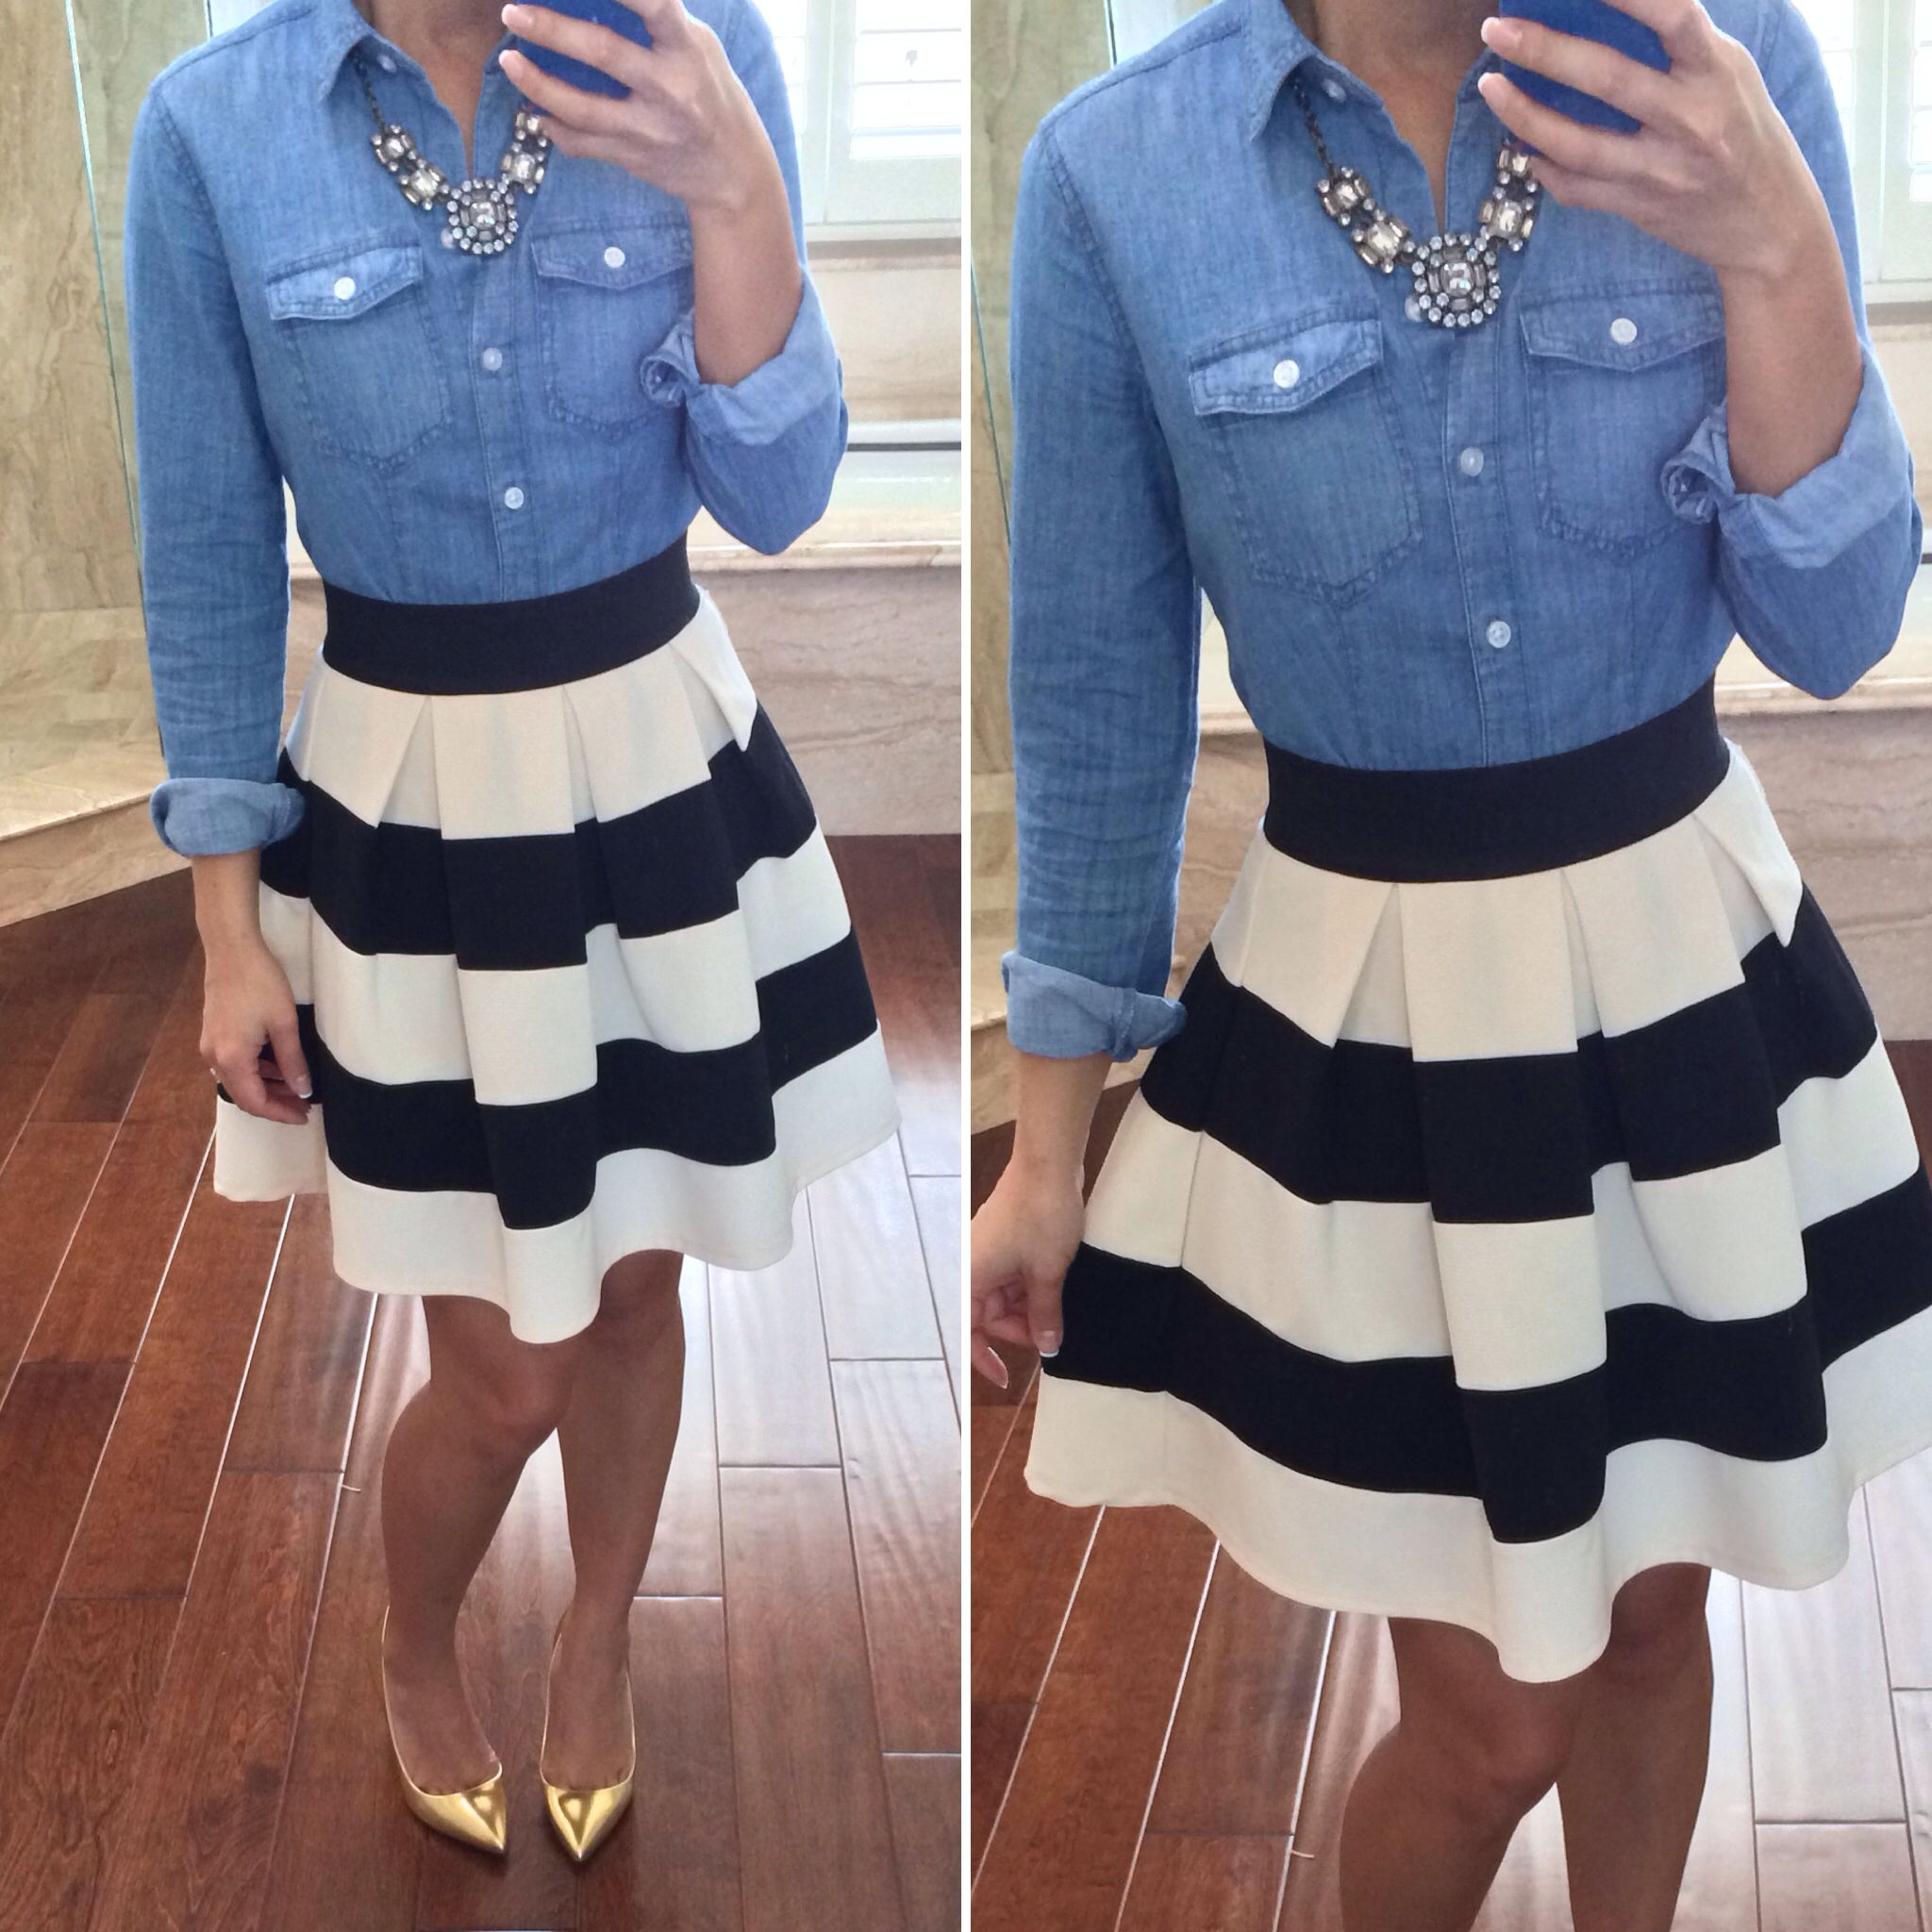 Casual but classy dressy weekend outfit: Chambray button up shirt, statement necklace, striped skirt, gold pumps - StylishPetite.com